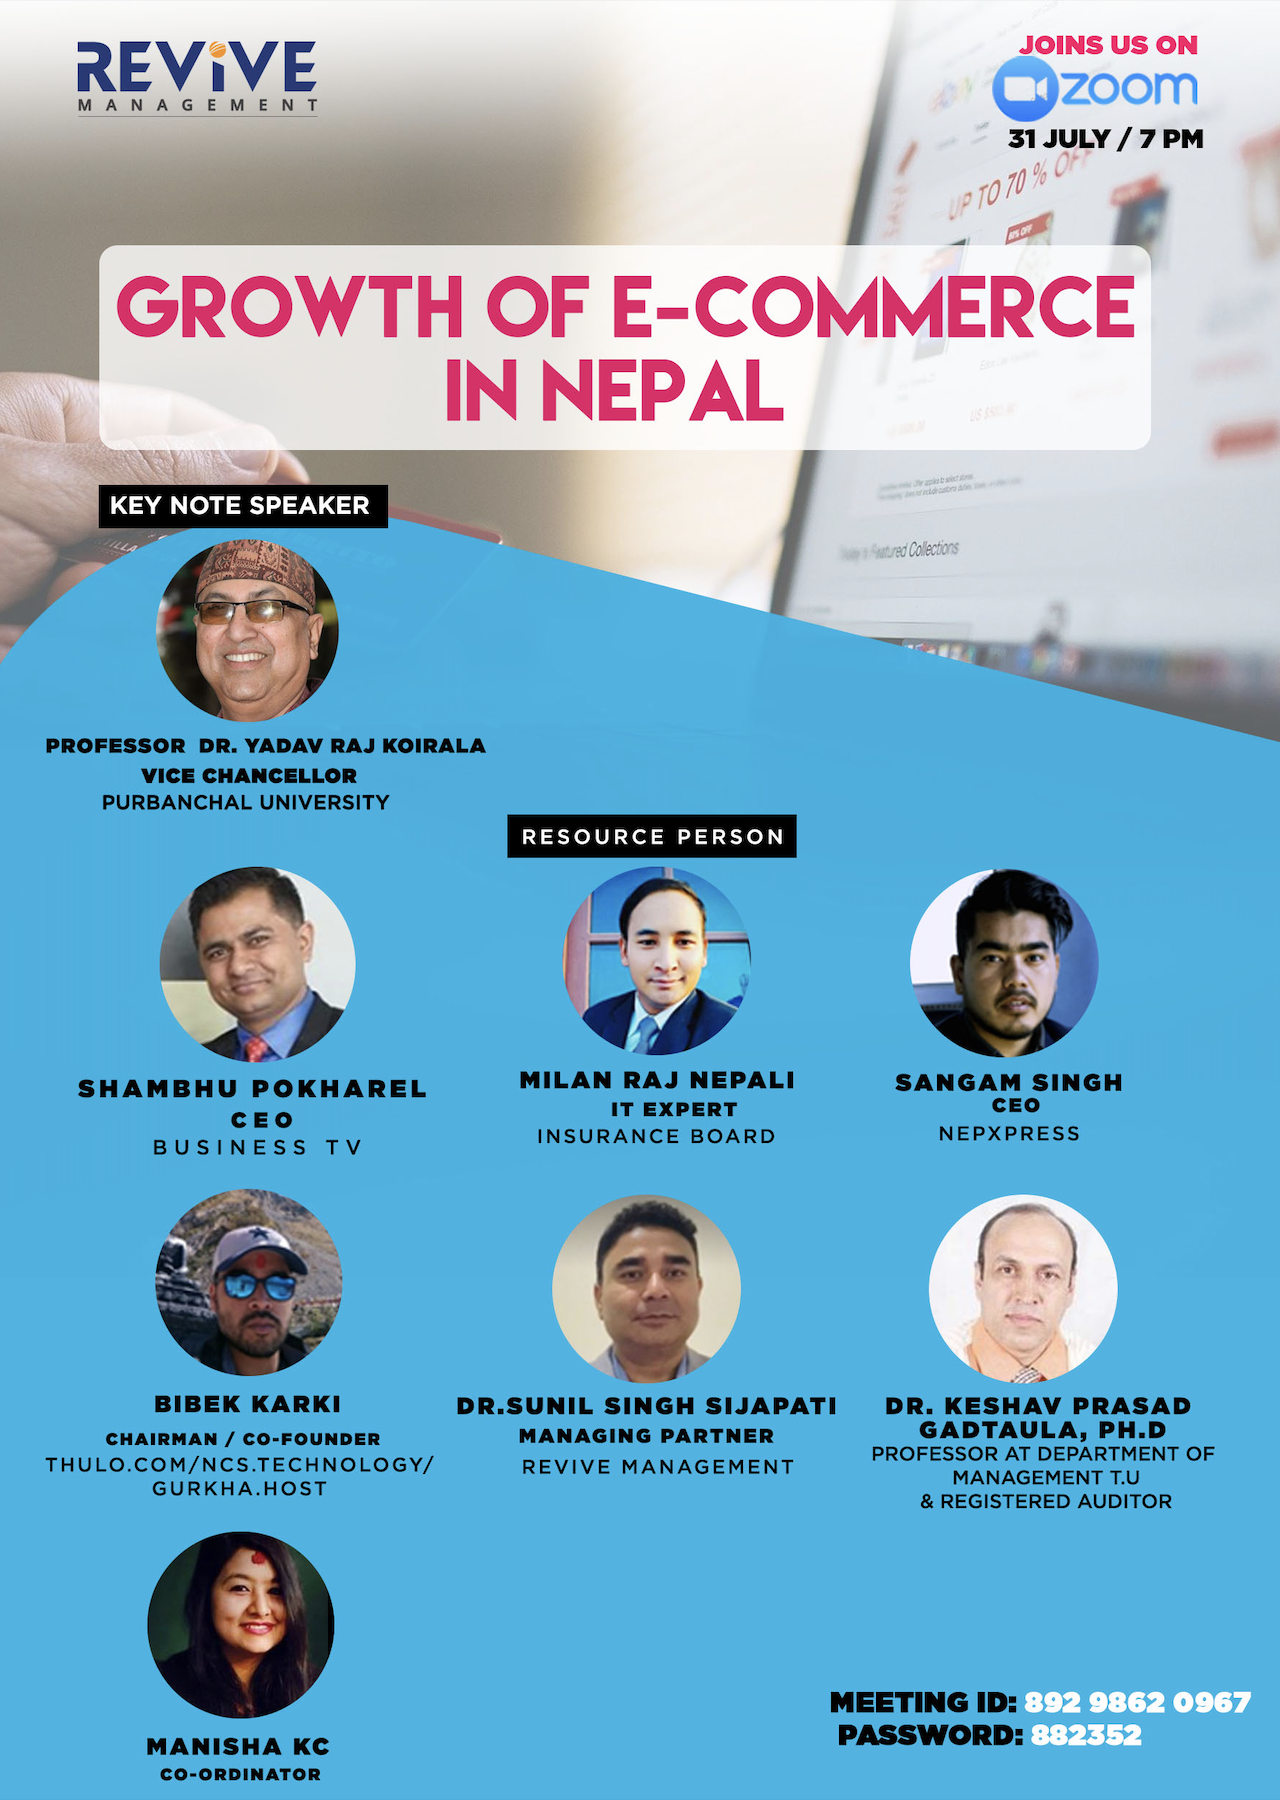 Growth Of E-commerce in Nepal